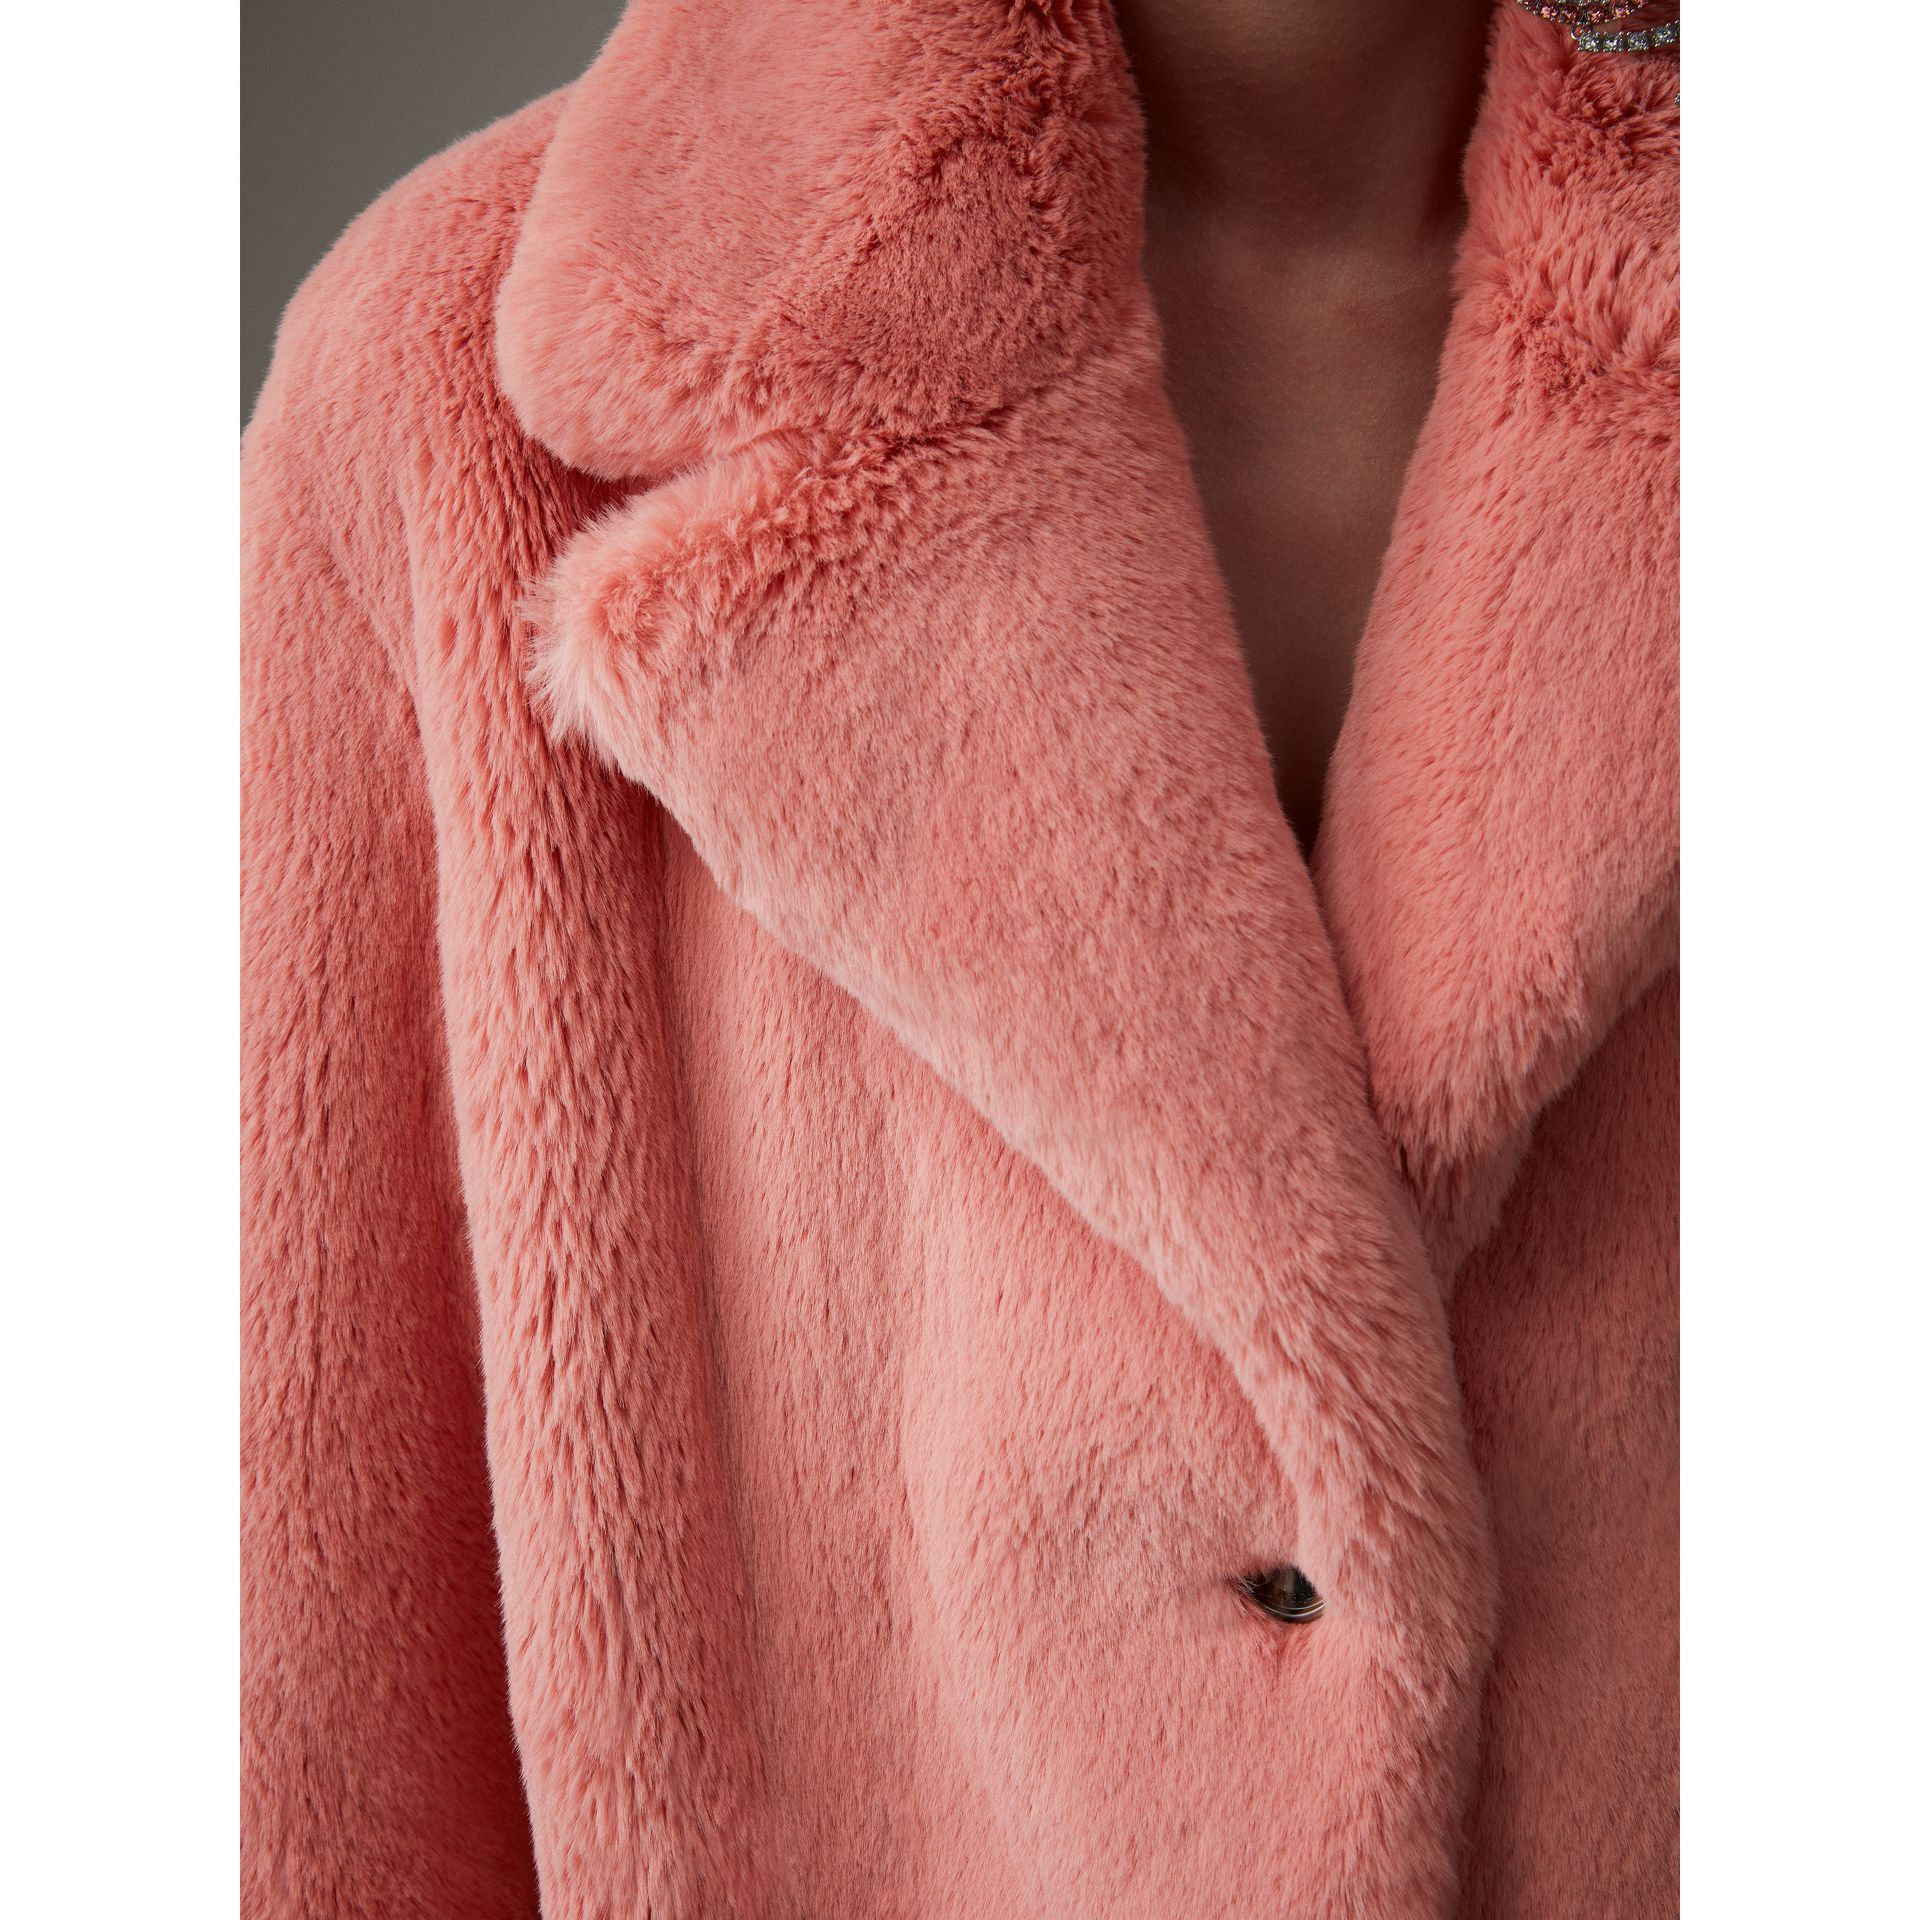 Manteau en fausse fourrure à boutonnage simple (Rose Pâle) - Femme | Burberry - photo de la galerie 2